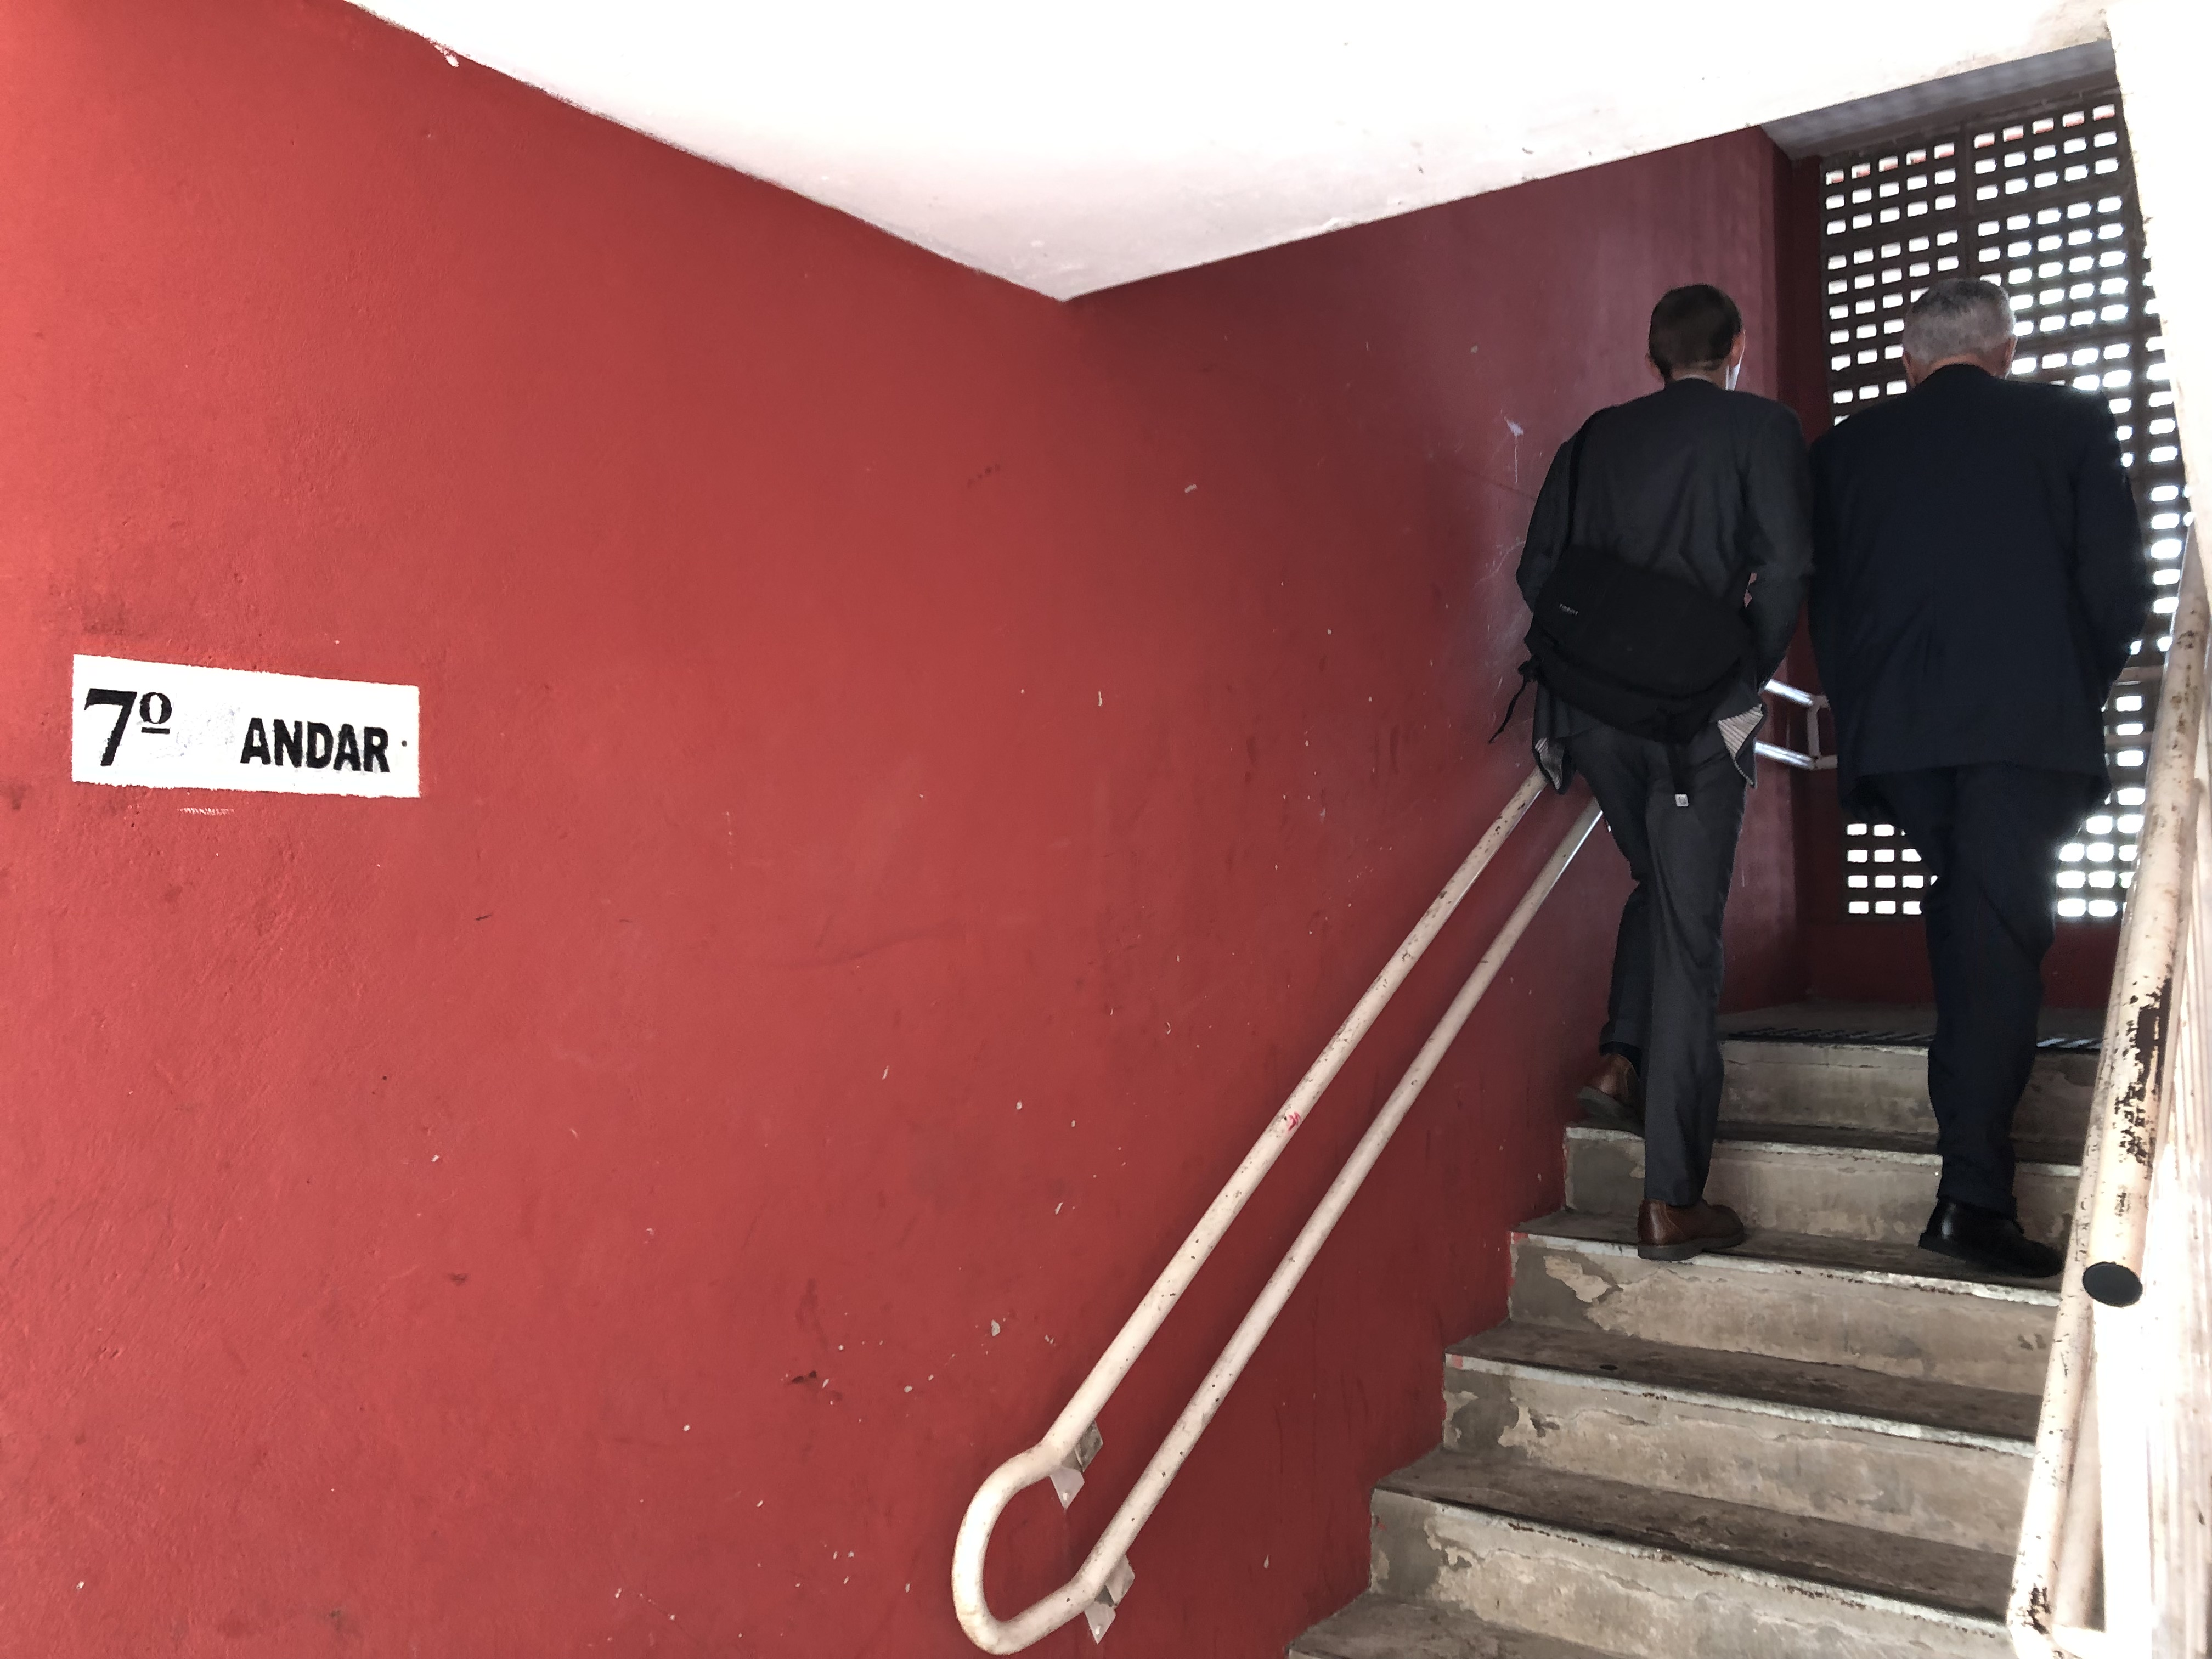 Elder Dieter F. Uchtdorf, right, of the Quorum of the Twelve Apostles, climbs the stairs between the seventh and eighth floors of an apartment building in Sao Paulo, Brazil, as he goes out teaching with a companionship of full-time missionaries.